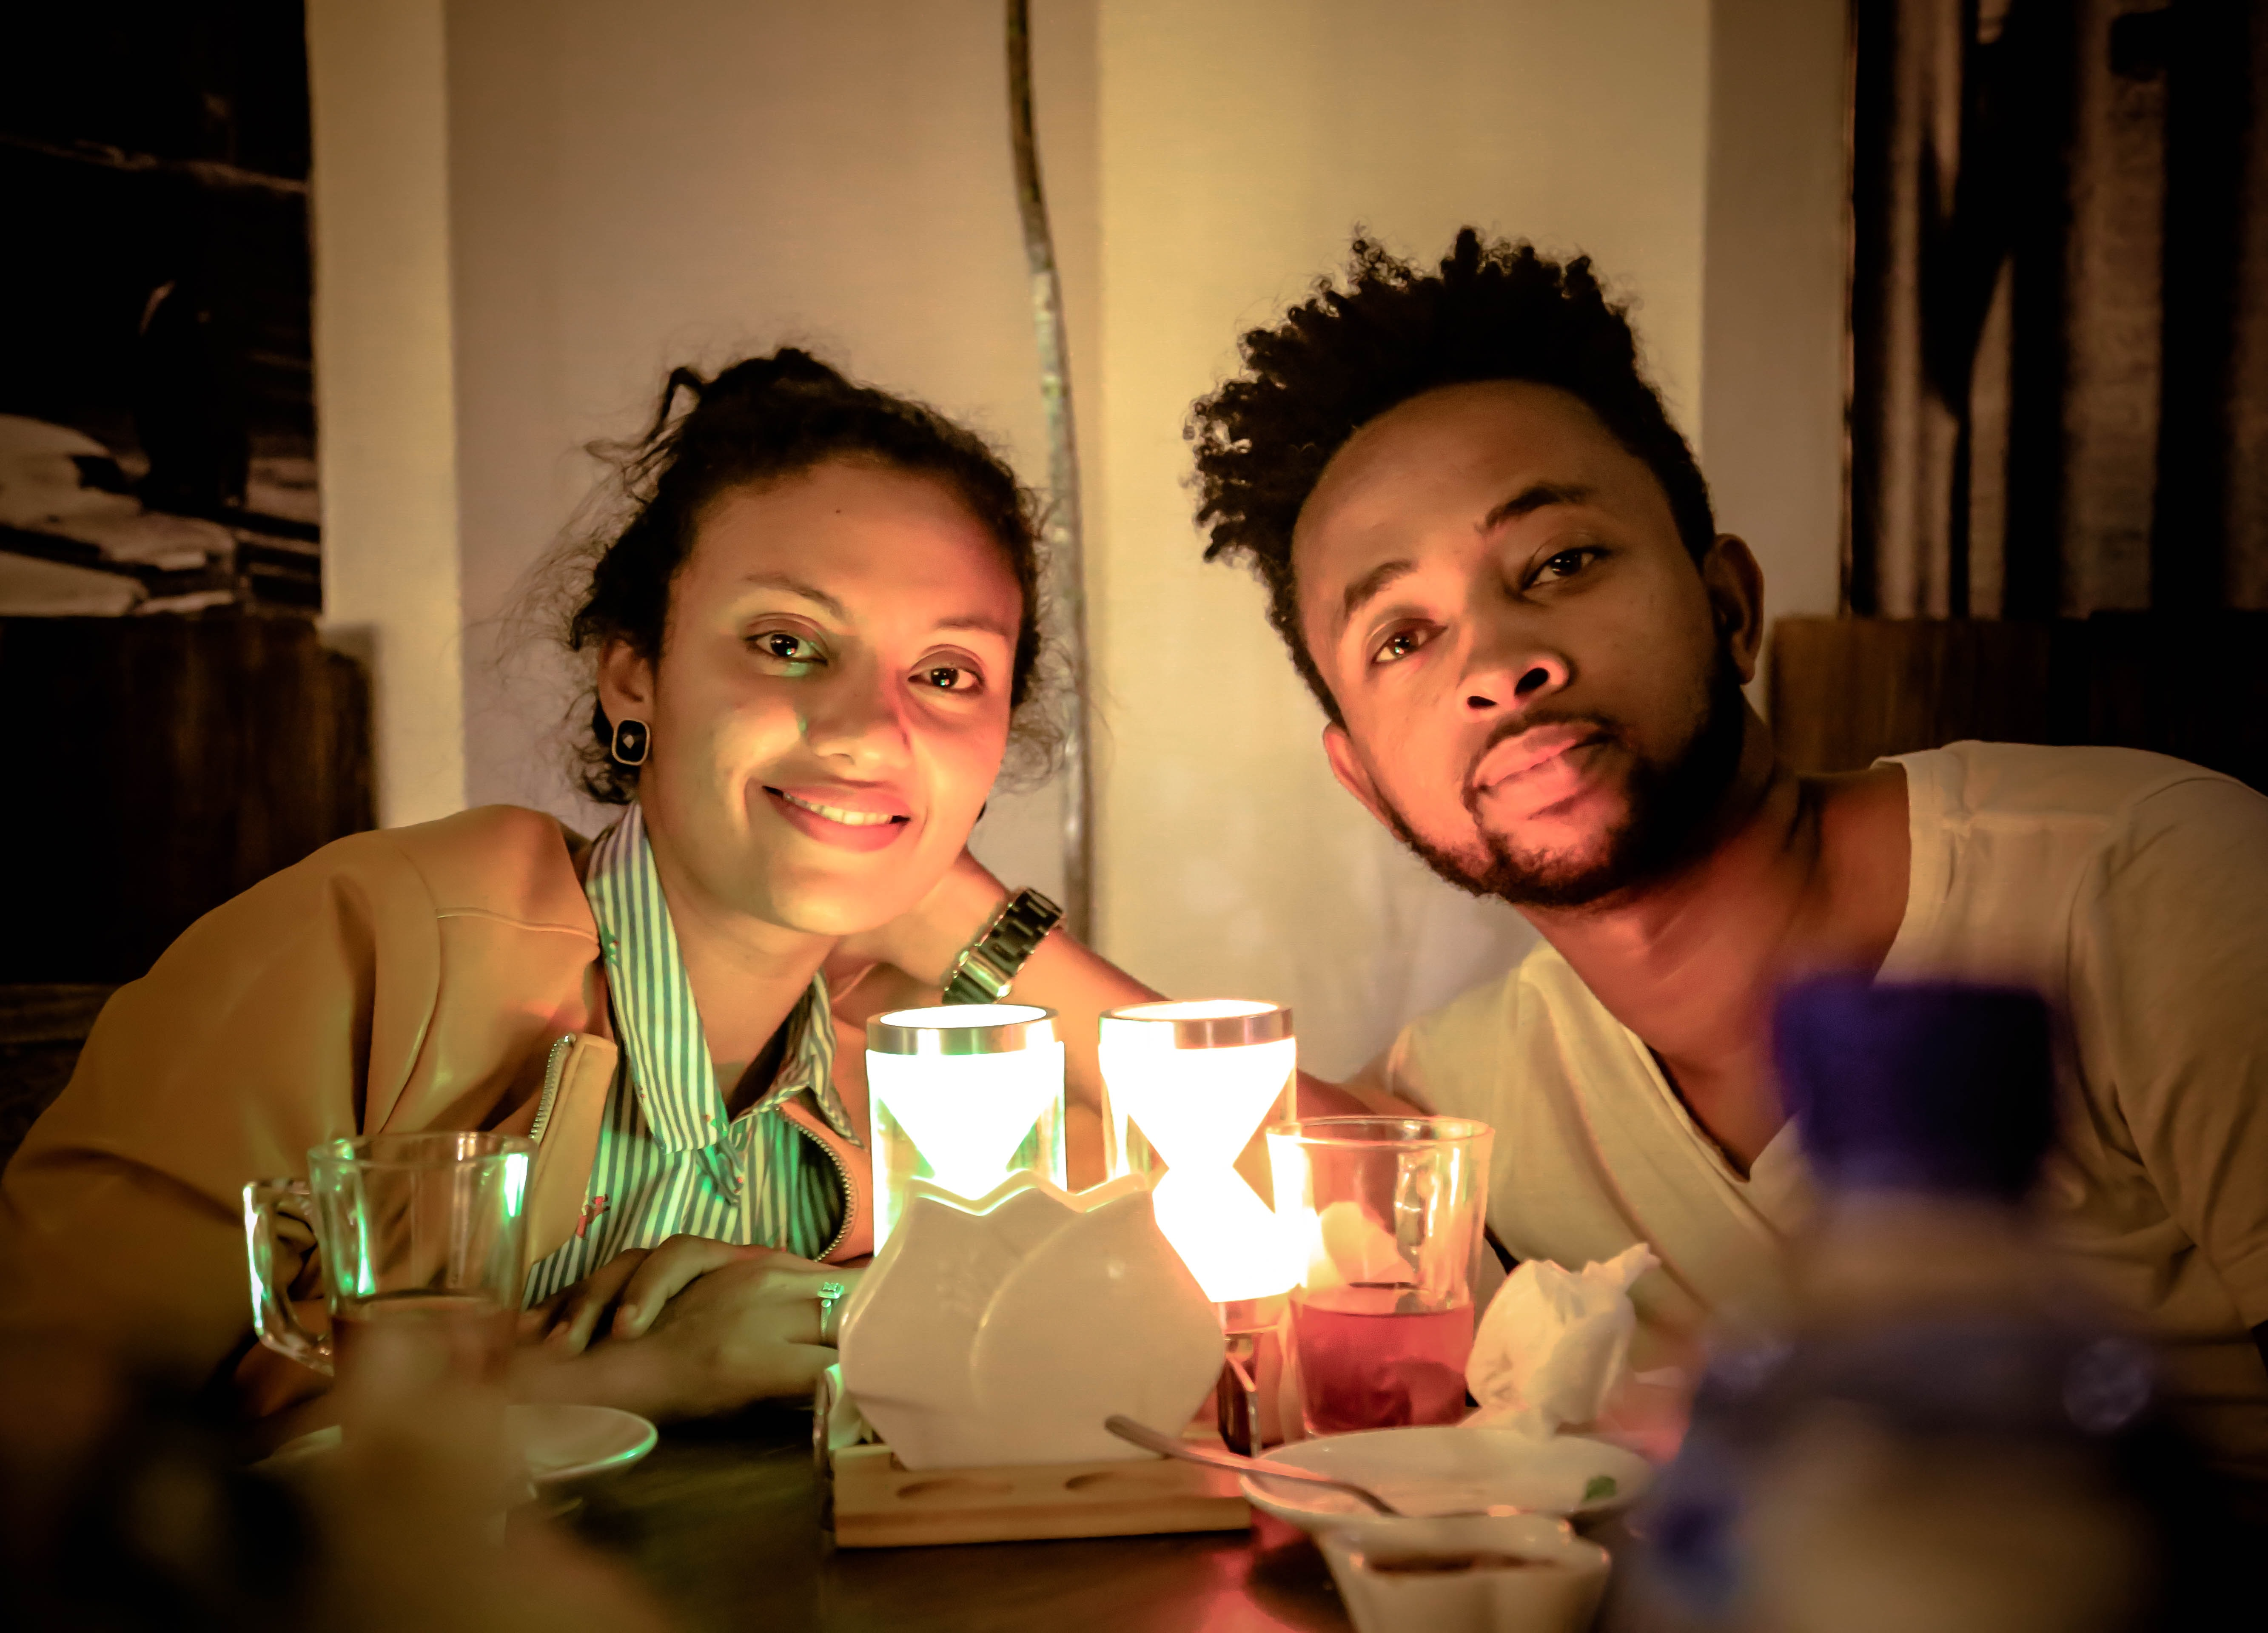 man and woman beside candles